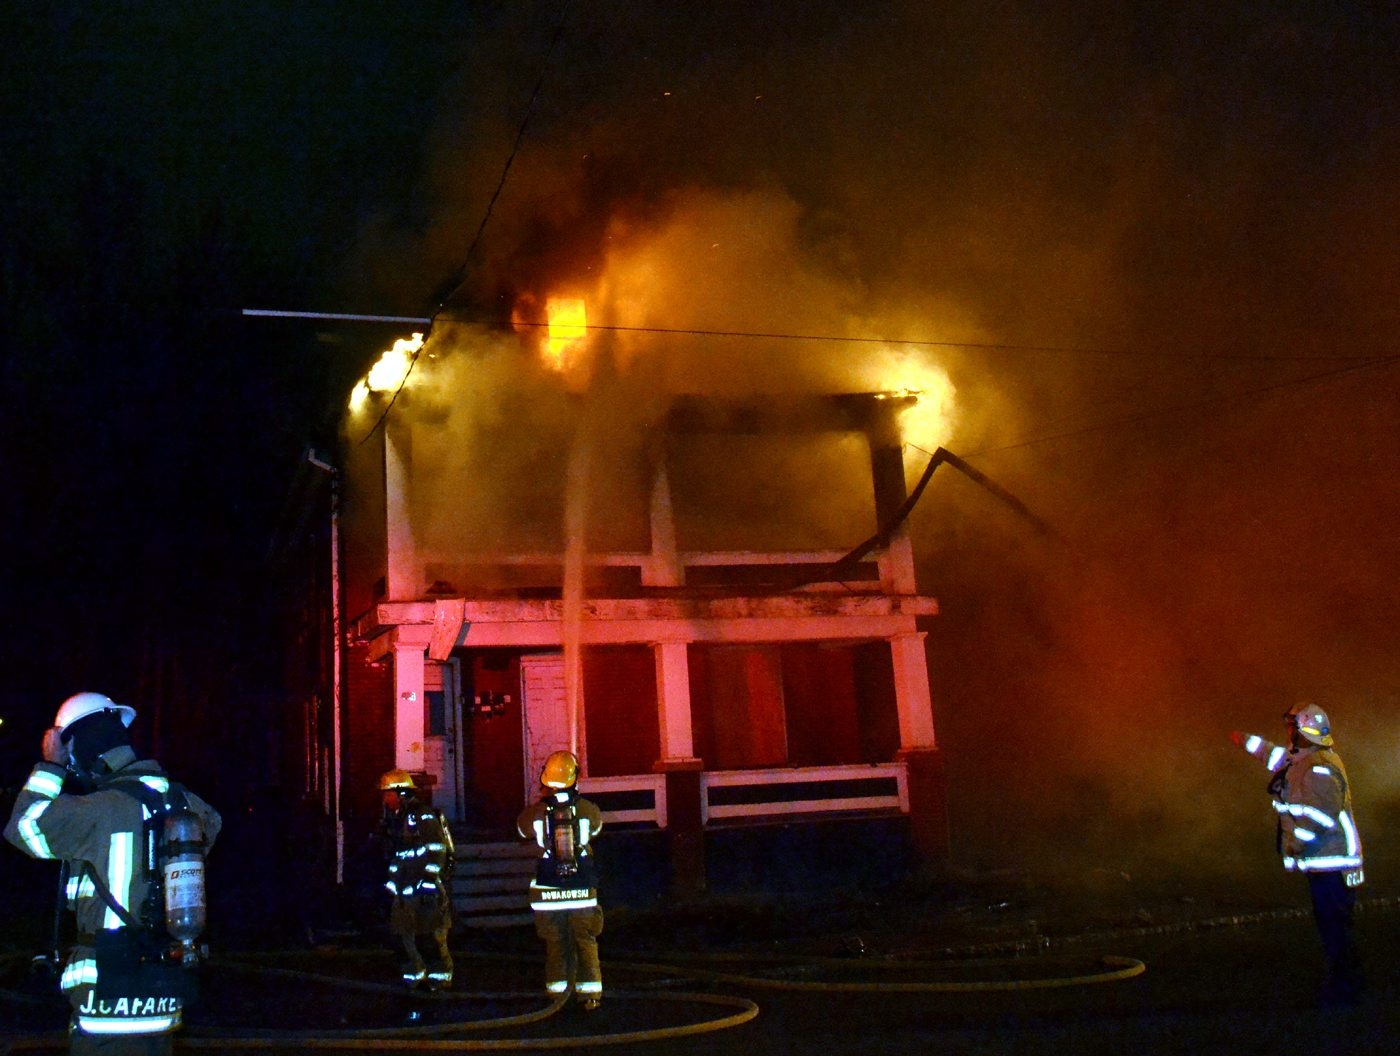 Niagara Falls firefighters respond to a structure fire on 19th Street in the city Dec. 19. (LARRY KENSINGER/CONTRIBUTOR)